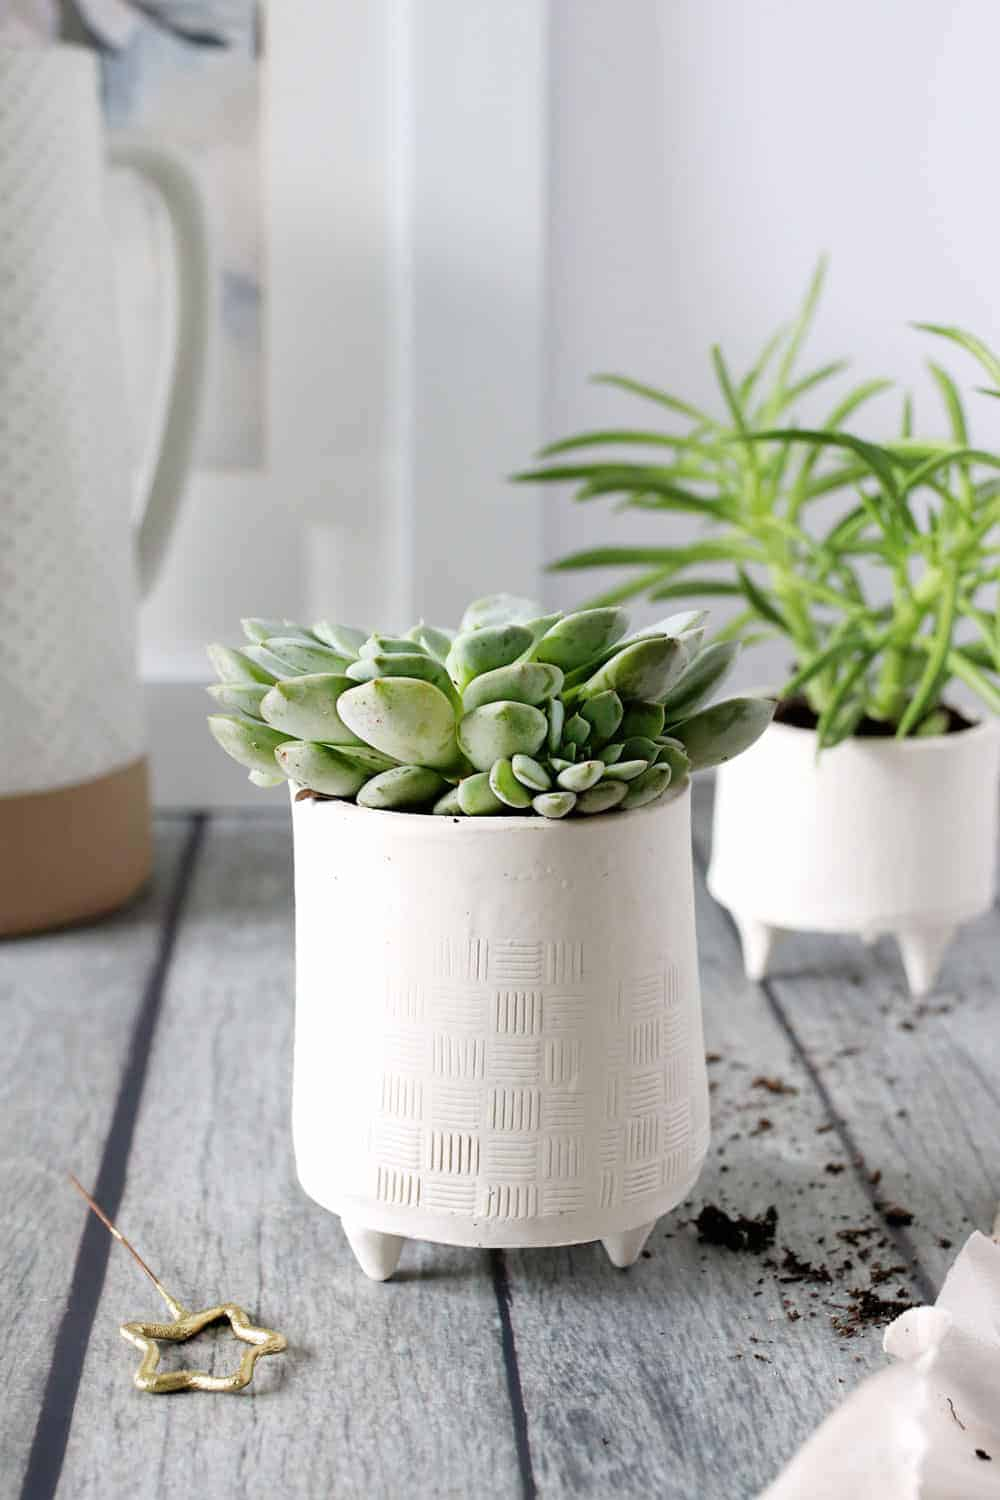 How to Make Your Own Gorgeous, Giftable Succulent Planters